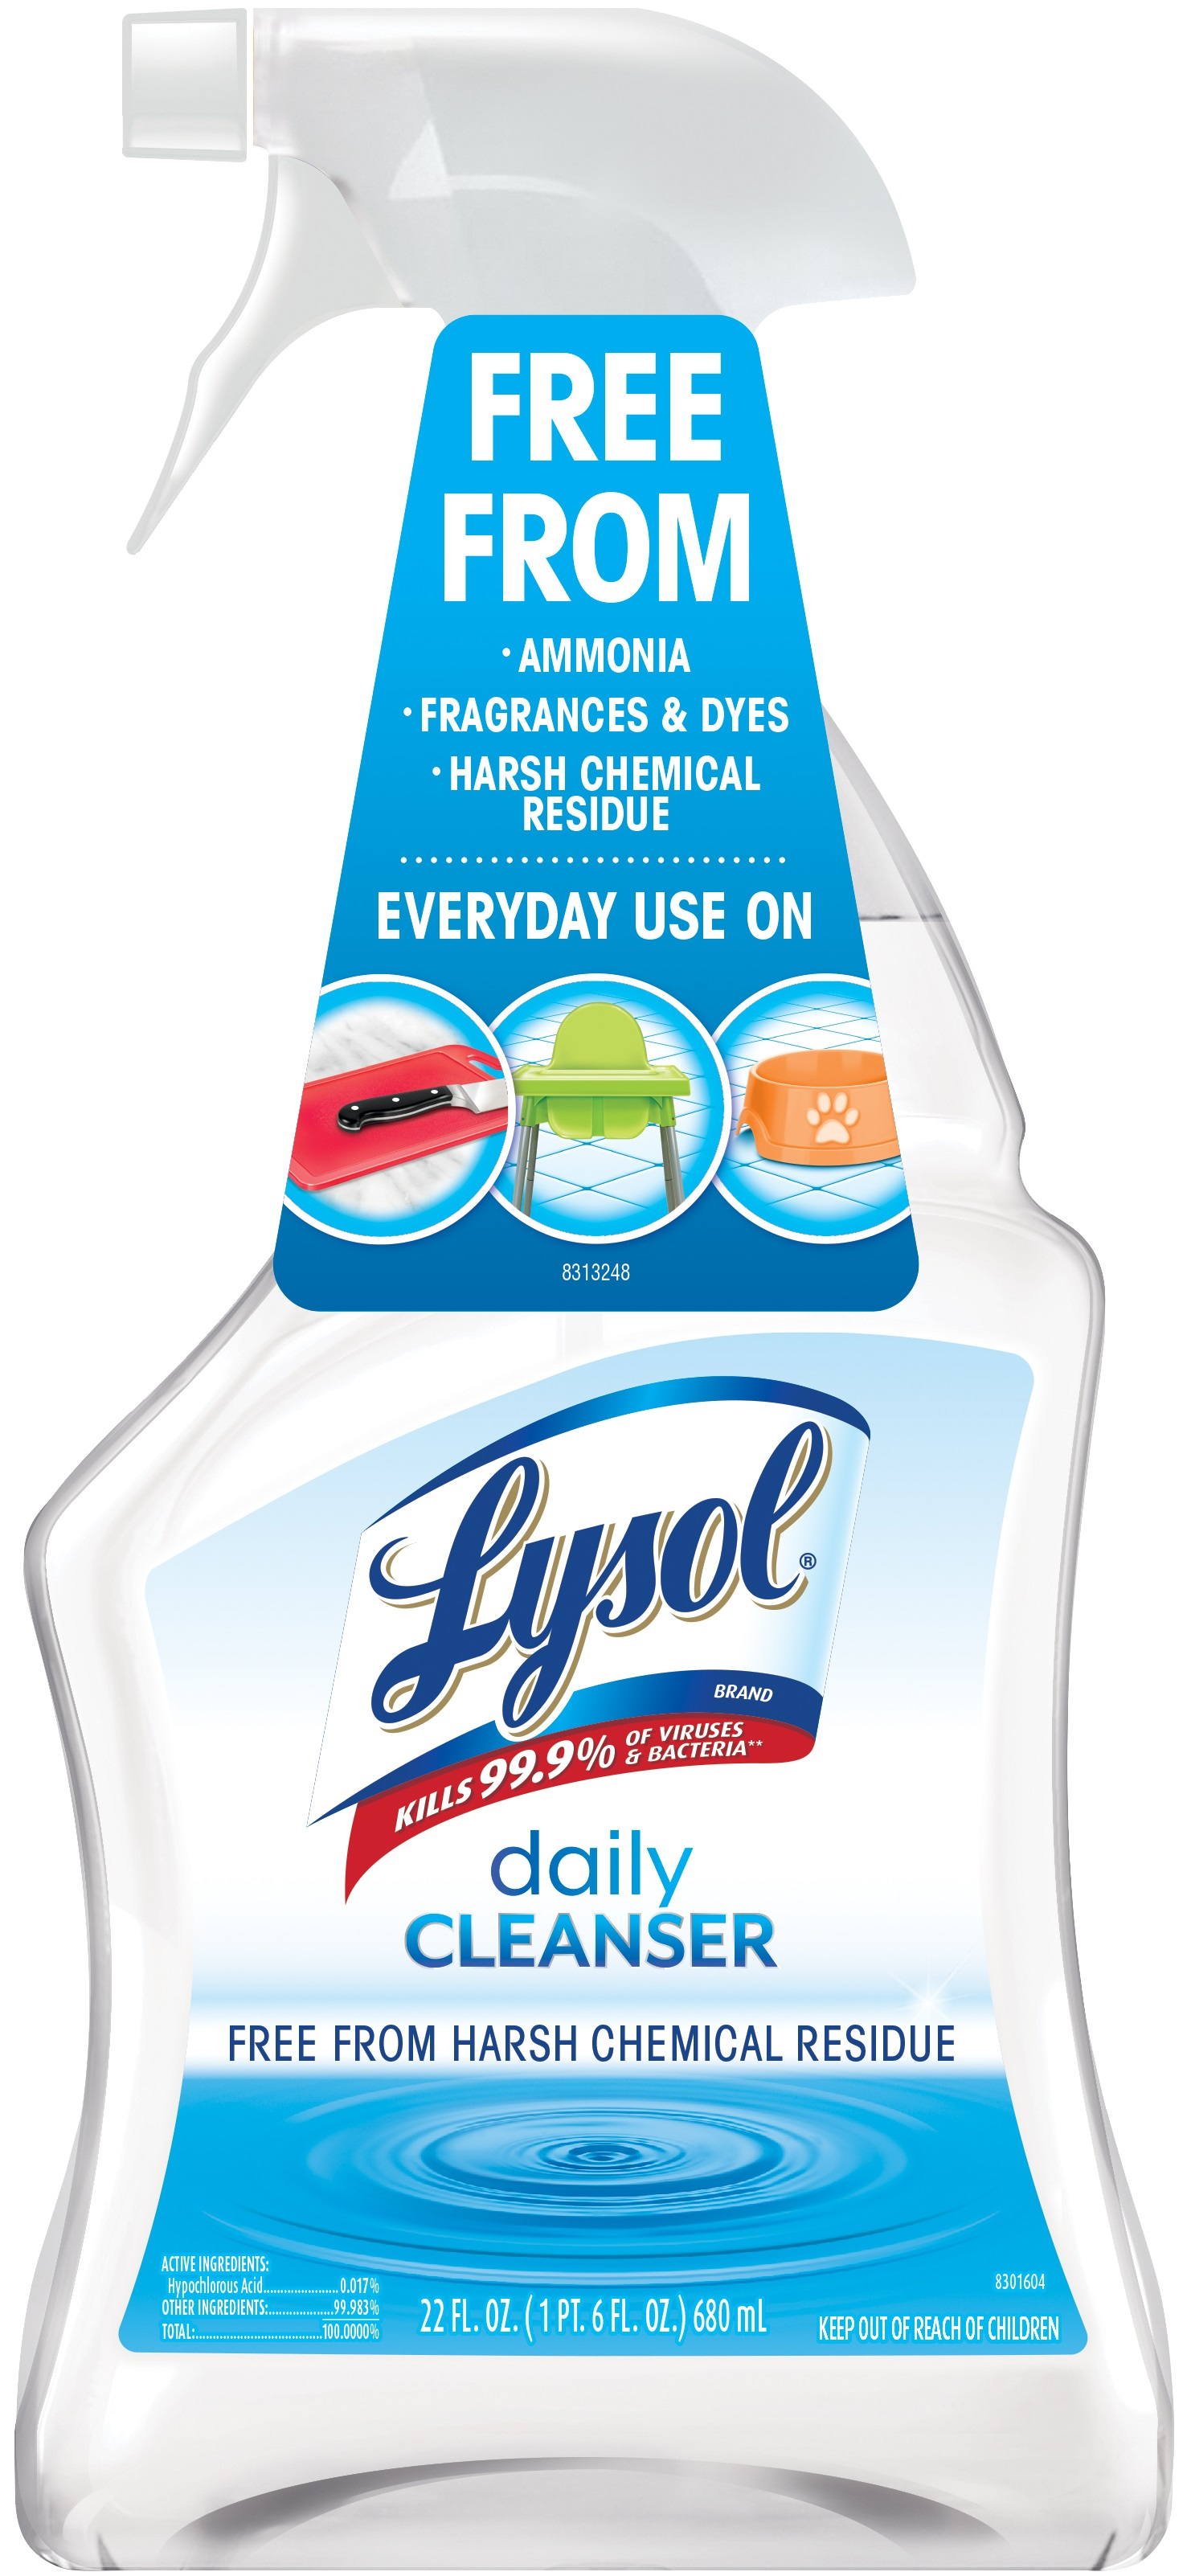 Lysol Daily Cleanser Spray, 22oz, All Purpose Cleaner